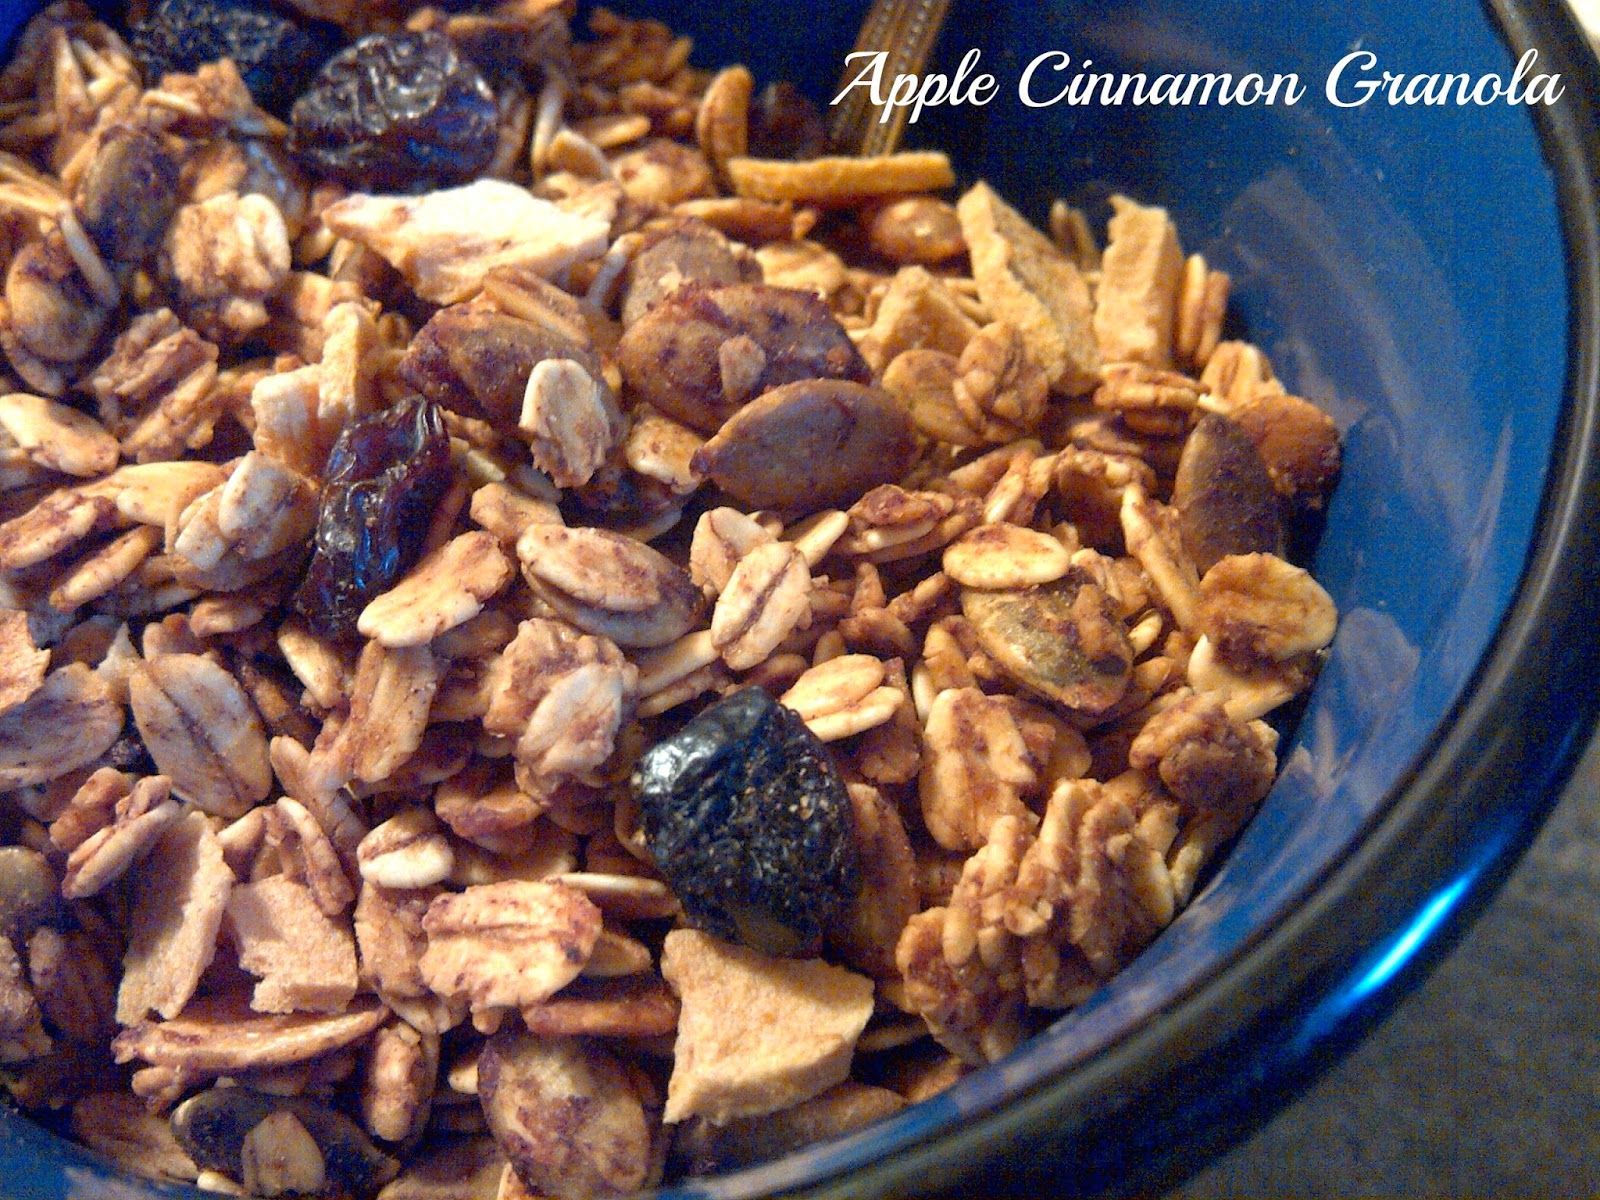 **If using gluten free oats, you can make ** ===> Apple Cinnamon Granola